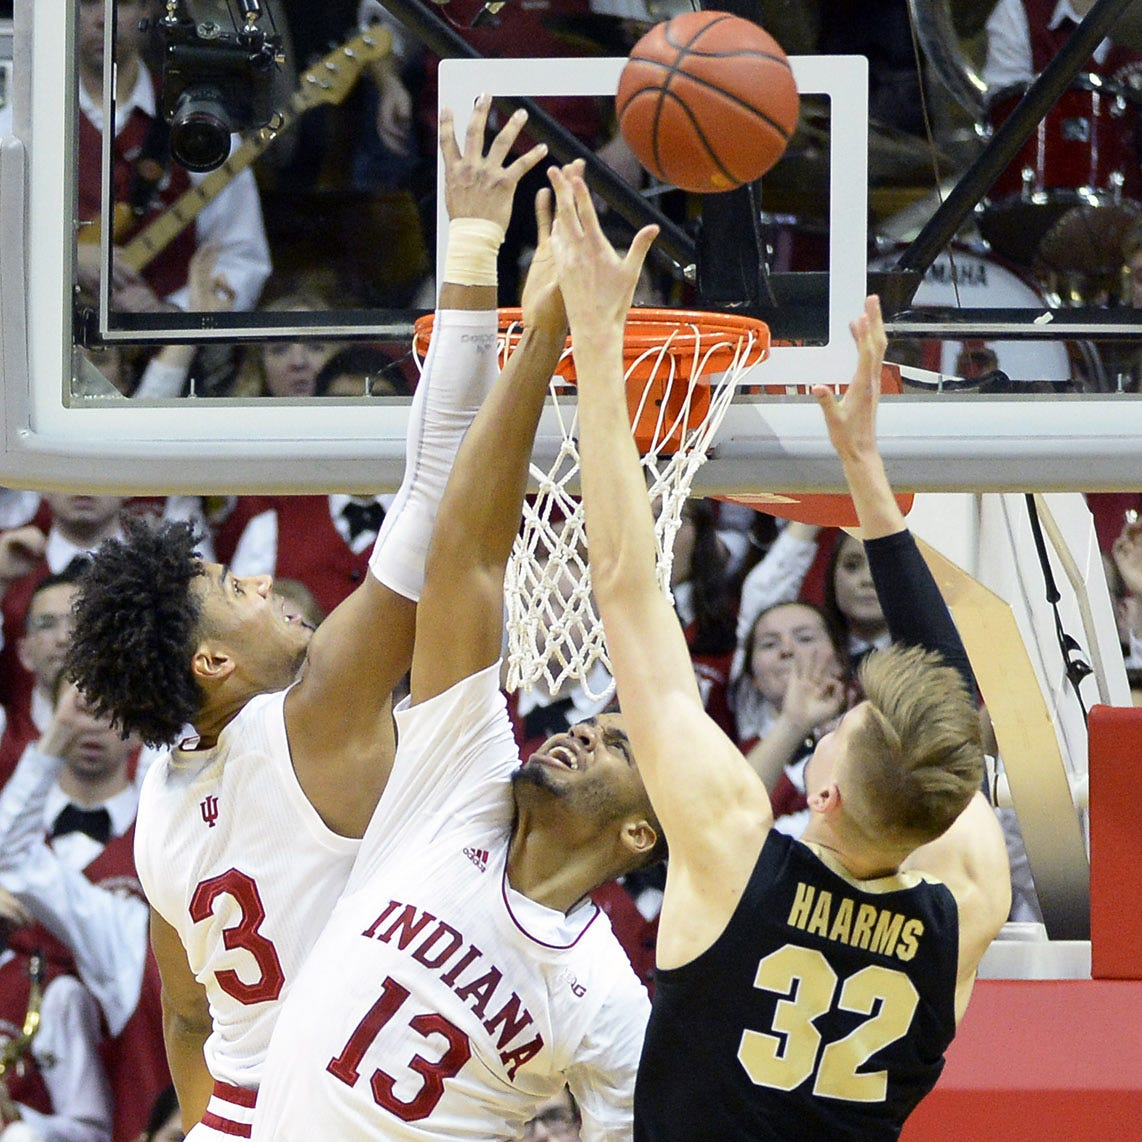 Buzzer breakdown: IU falls short in upset bid over No. 15 Purdue